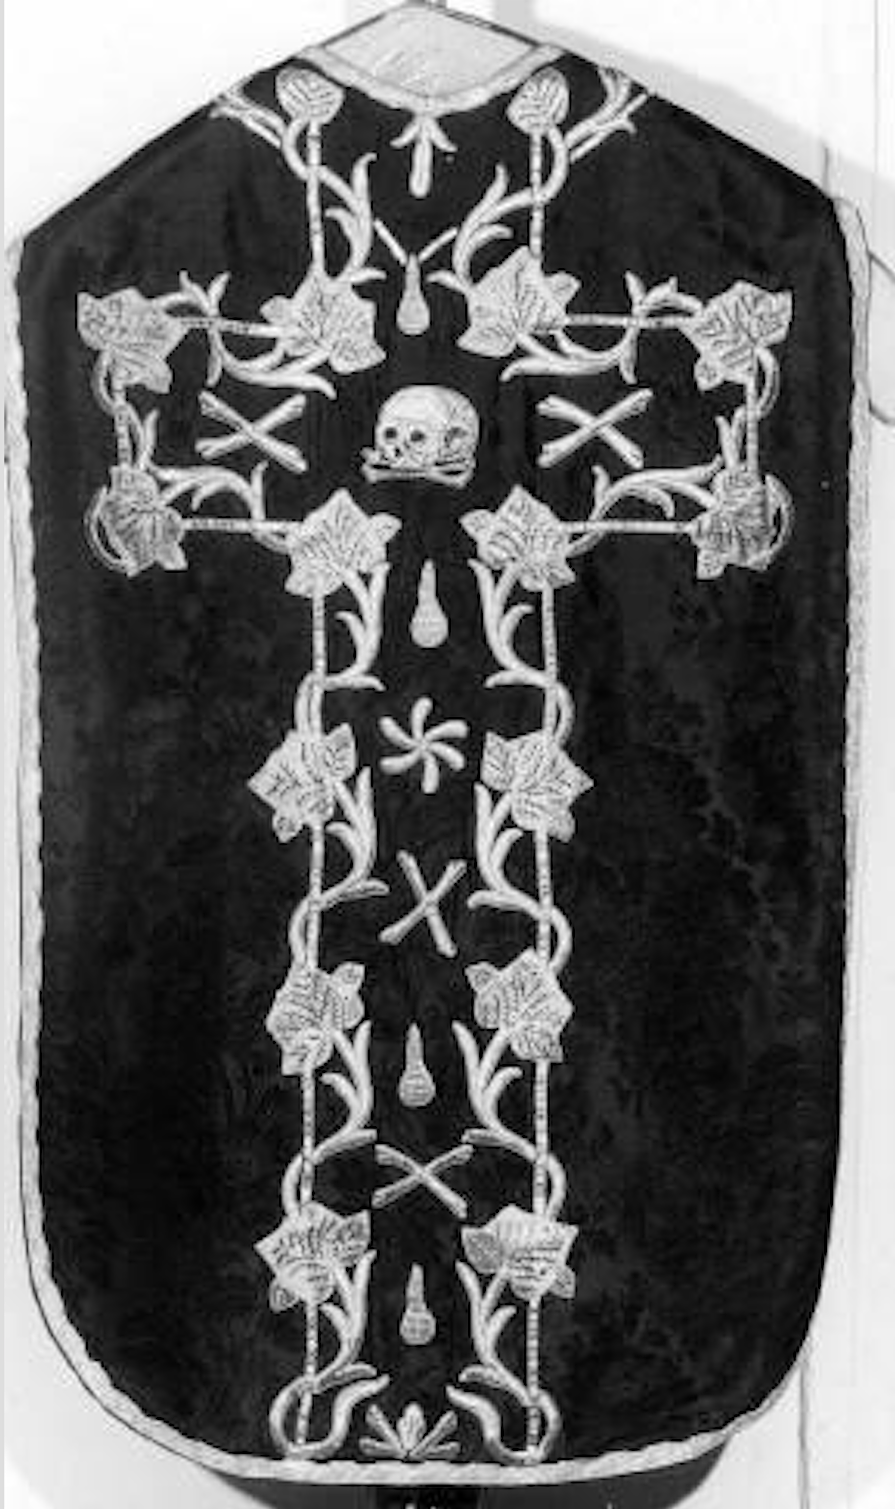 Some Unique Black Vestments For All Souls Day Liturgical Arts Journal